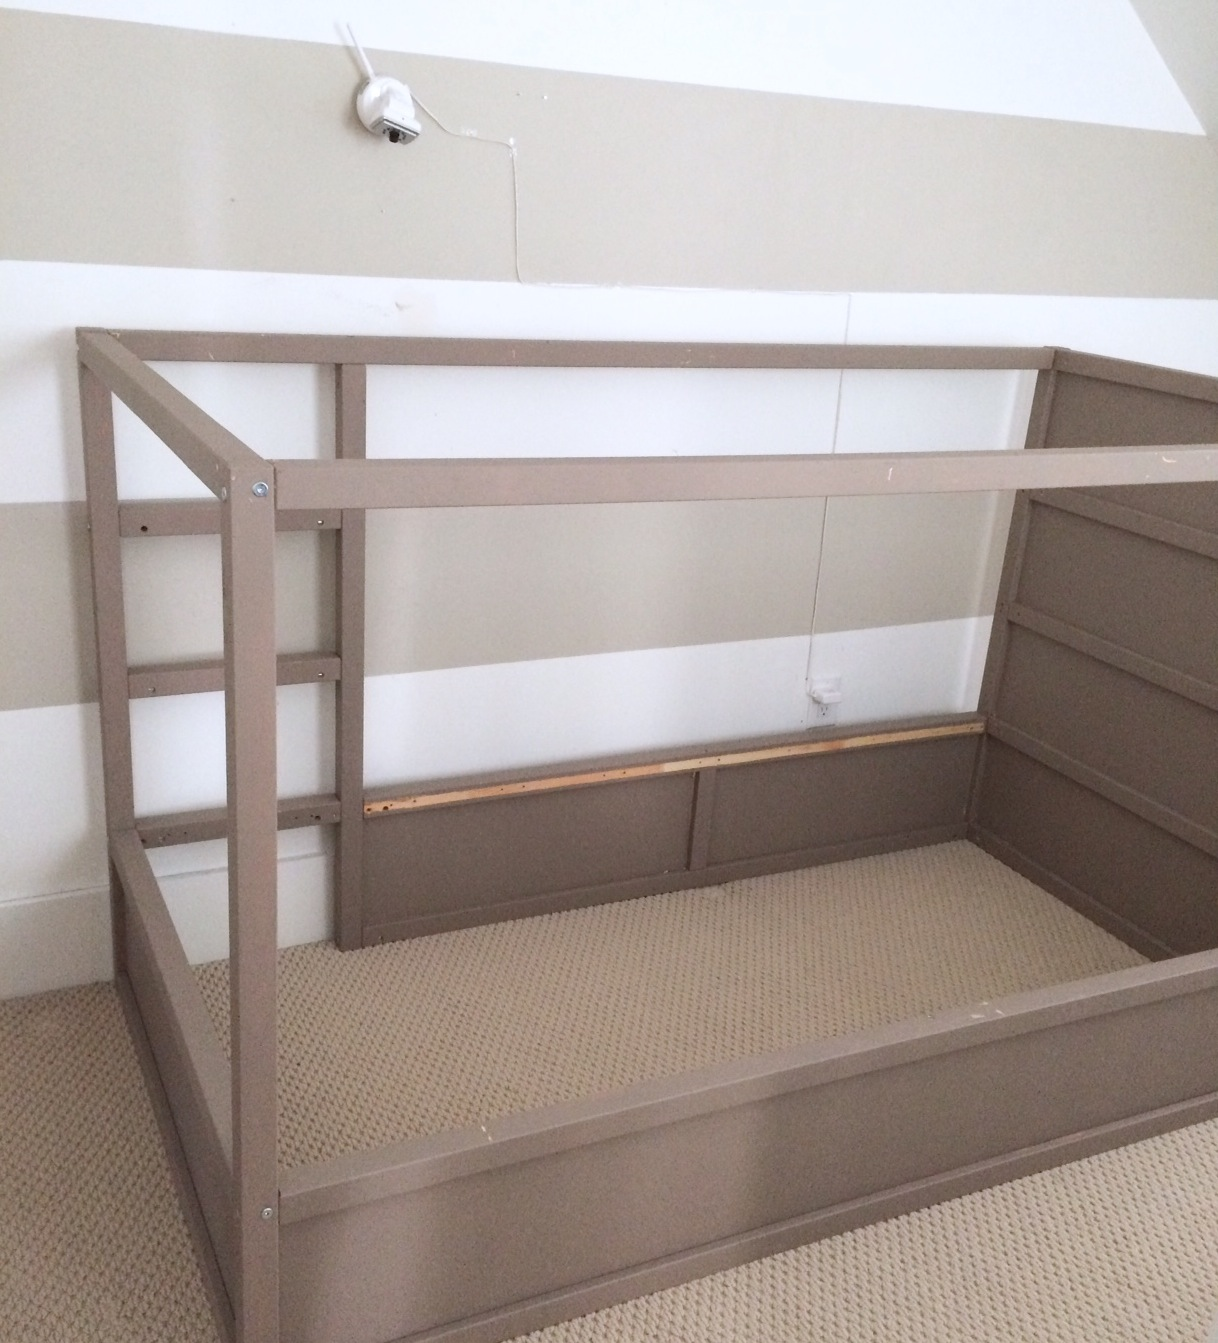 Ikea Kura Bed Hack Diy Boy Canopy Bed Harlow Amp Thistle